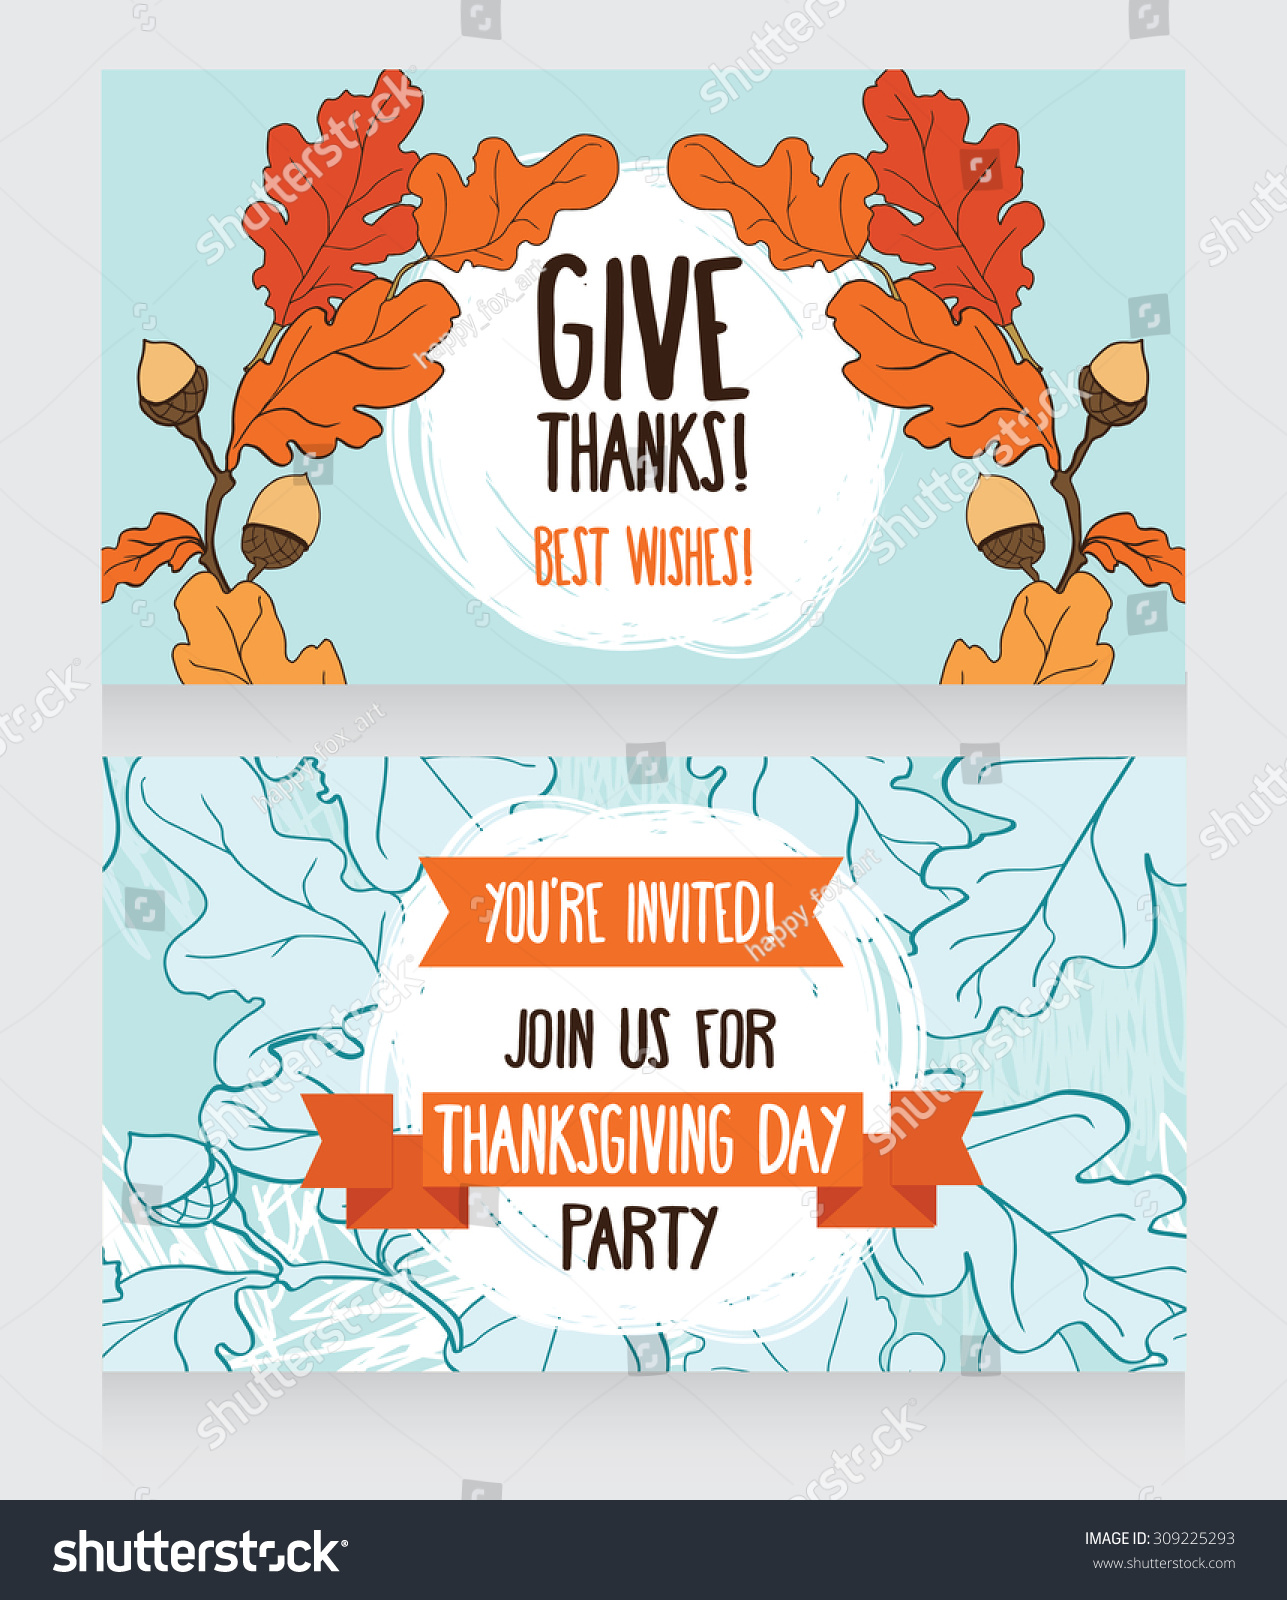 Greeting cards thanksgiving day cute party stock vector 309225293 greeting cards for thanksgiving day cute party invitations vector illustration kristyandbryce Images